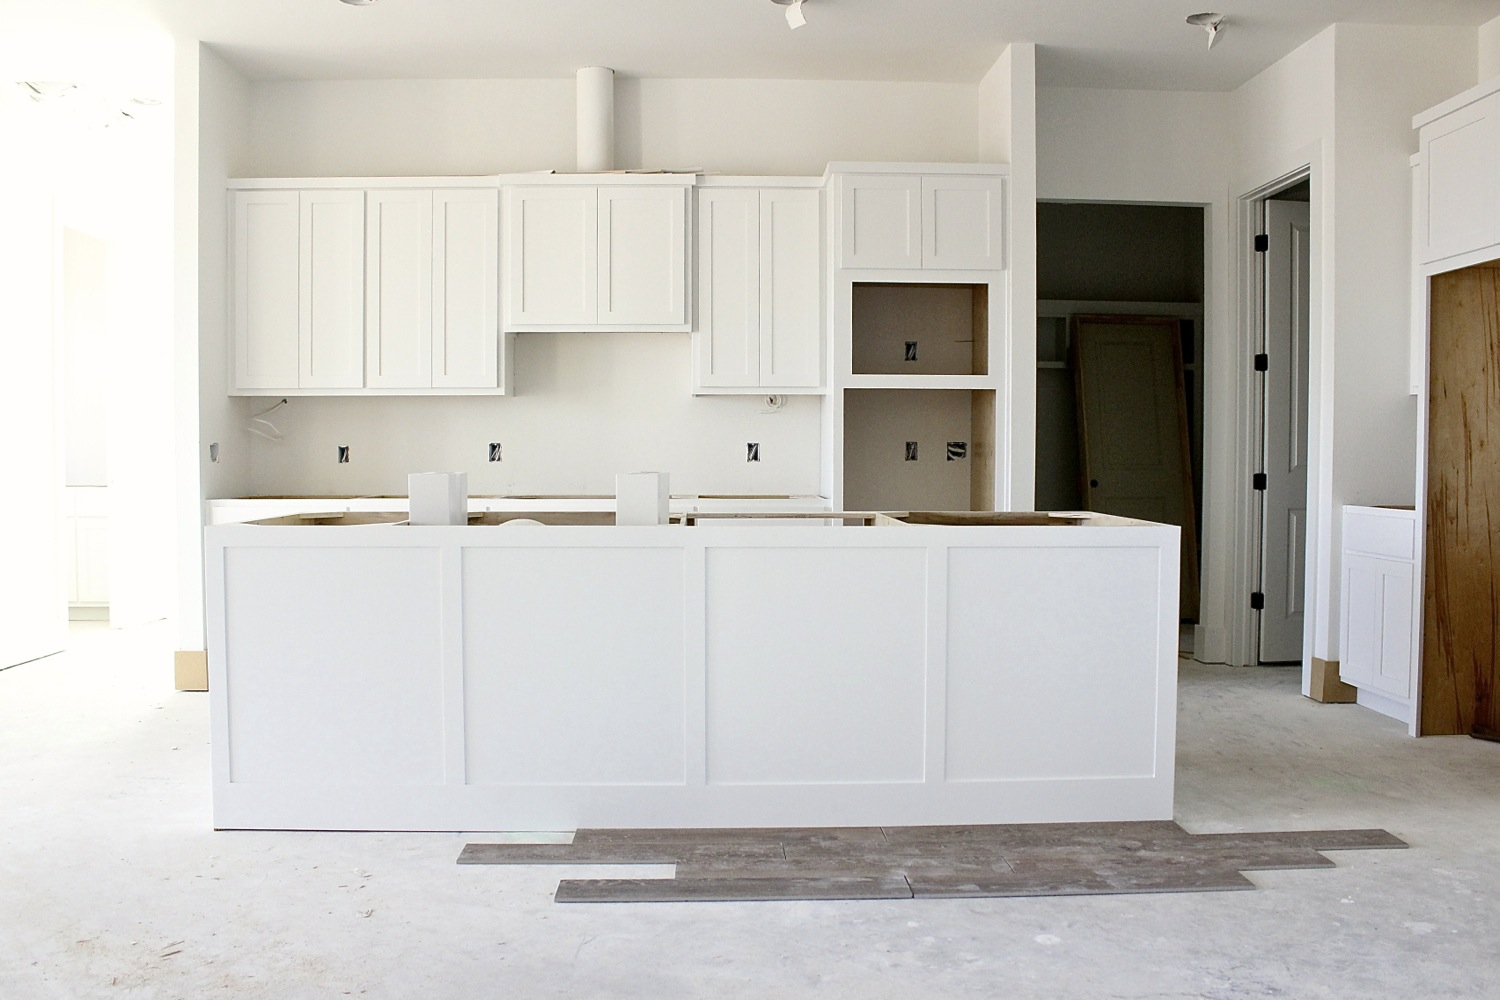 tile floor kitchen white cabinets. The Cabinets Had Just Gone In  And I Love Them Knew Wanted White From The Very Get Go But Also That Stone Countertops Building A New Home Tile Flooring And Color MADE